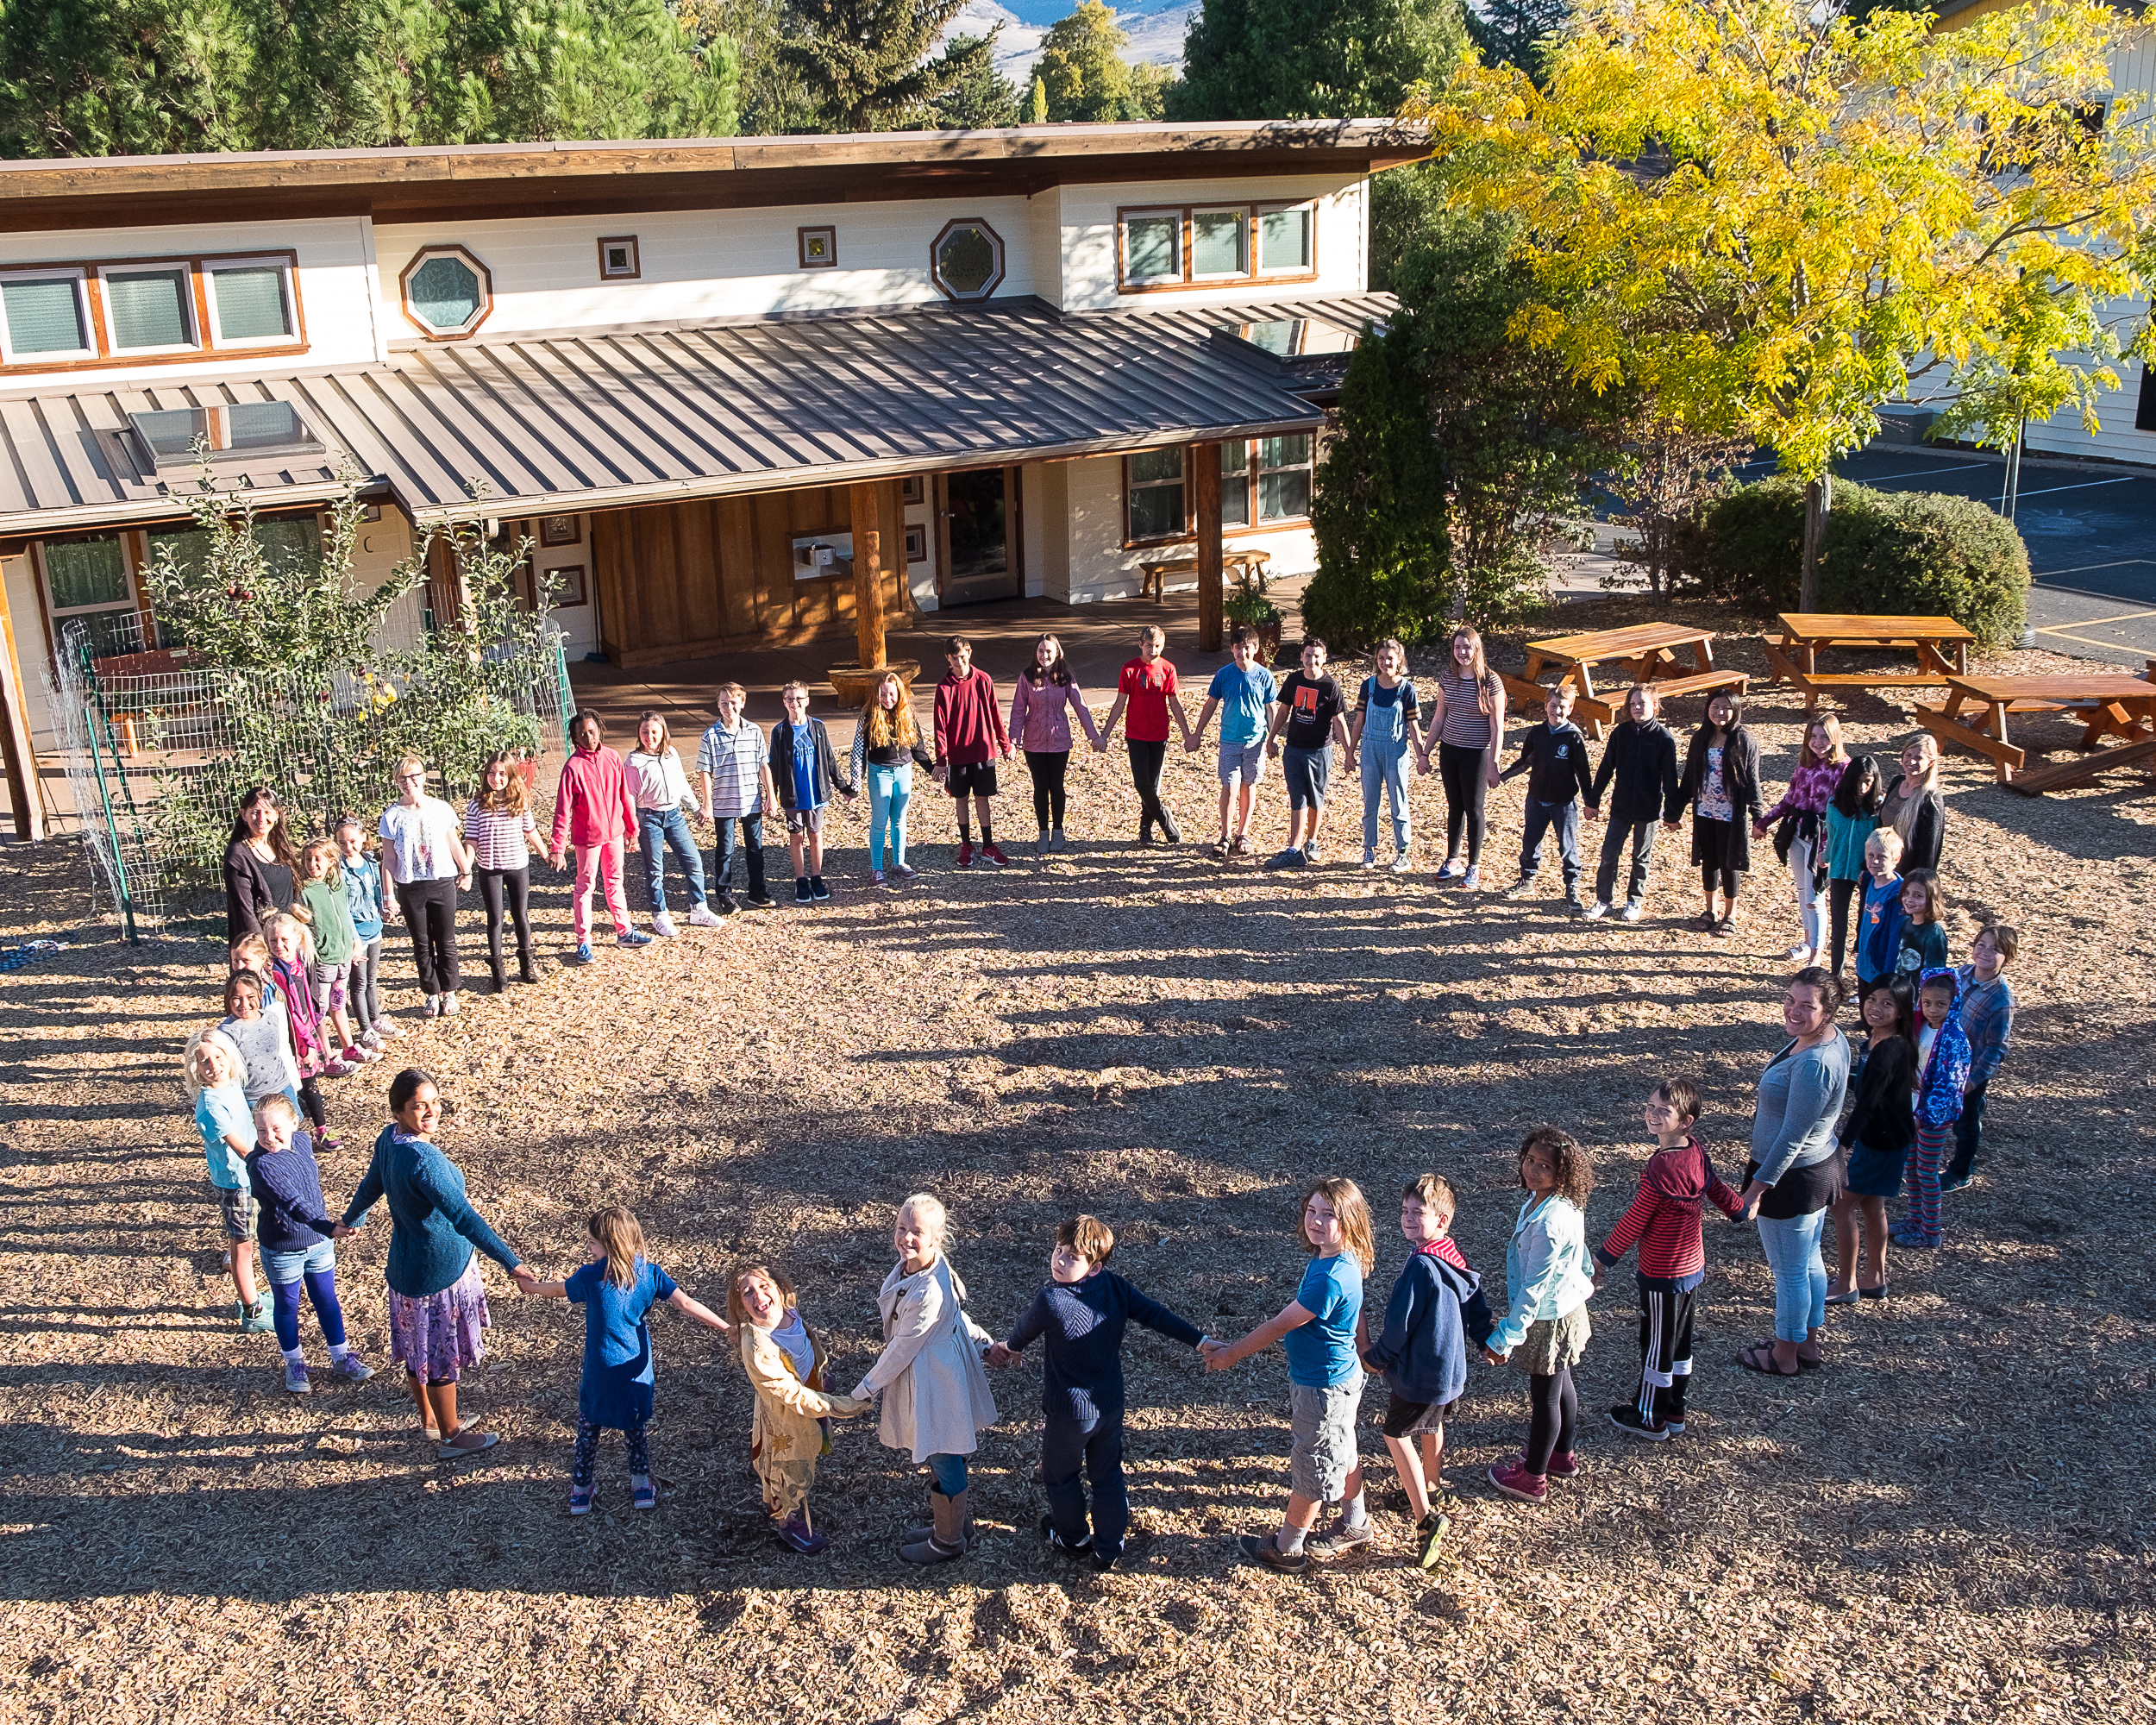 Our Giving Culture - Without philanthropy our school wouldn't exist. As a non-profit organization The Siskiyou School relies on fundraising to meet our annual budgetary goals as well as raising money for capital campaigns. It's the giving culture that started our school and we ask everybody to contribute to pay it forward as the visionary founders of the school did.